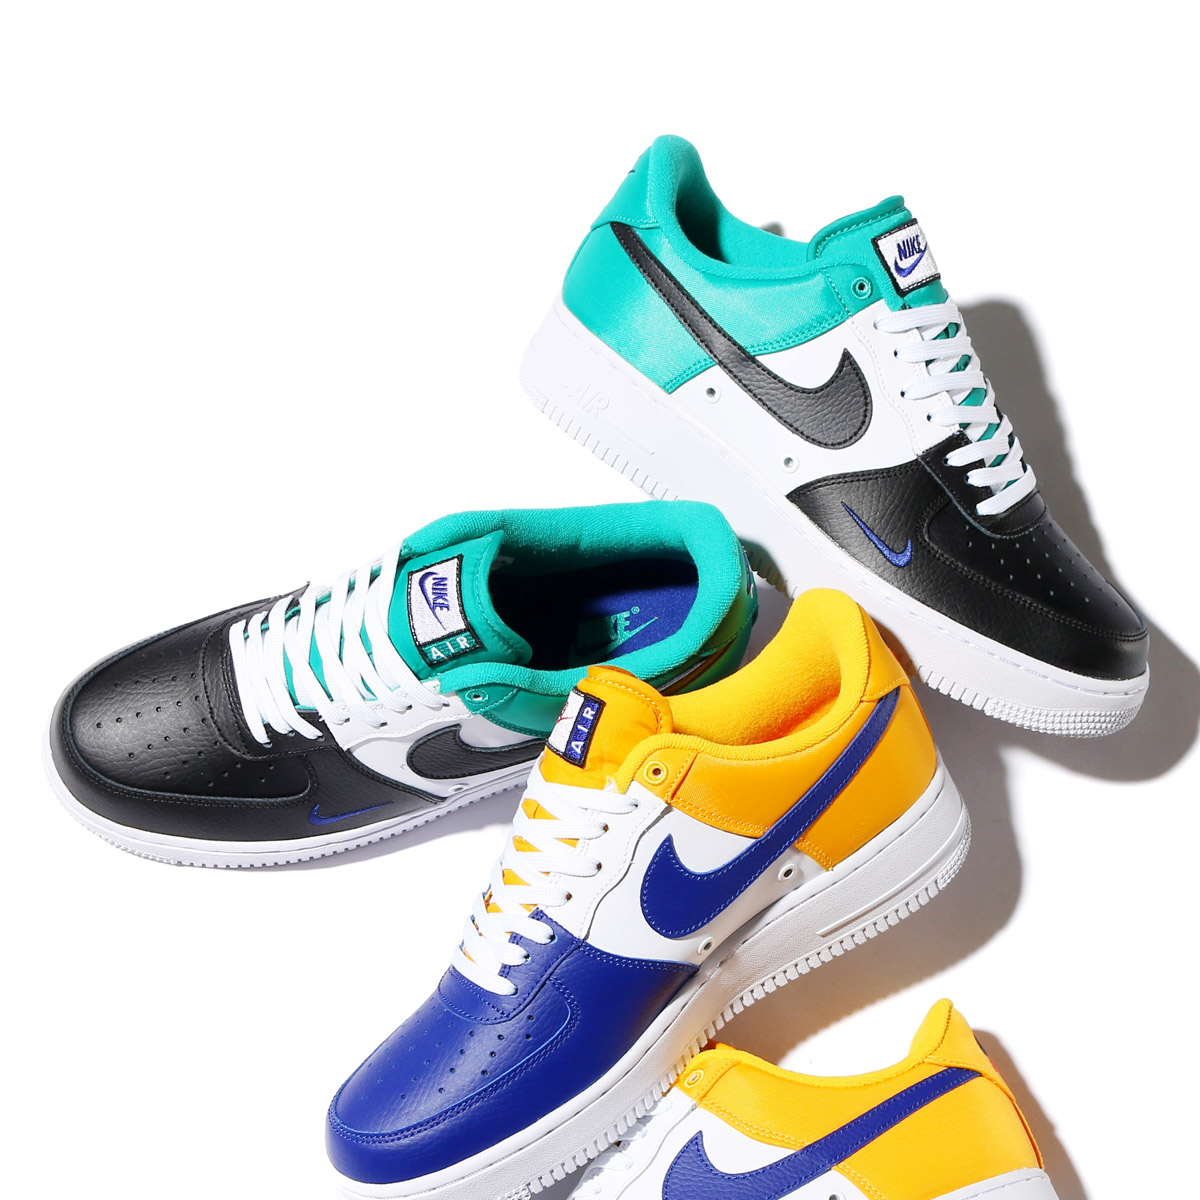 newest 3d459 157c4 NIKE AIR FORCE 1  07 LV8 (Nike air force 1 07 LV8) (BLACK DEEP ROYAL BLUE-NEPTUNE  GREEN)